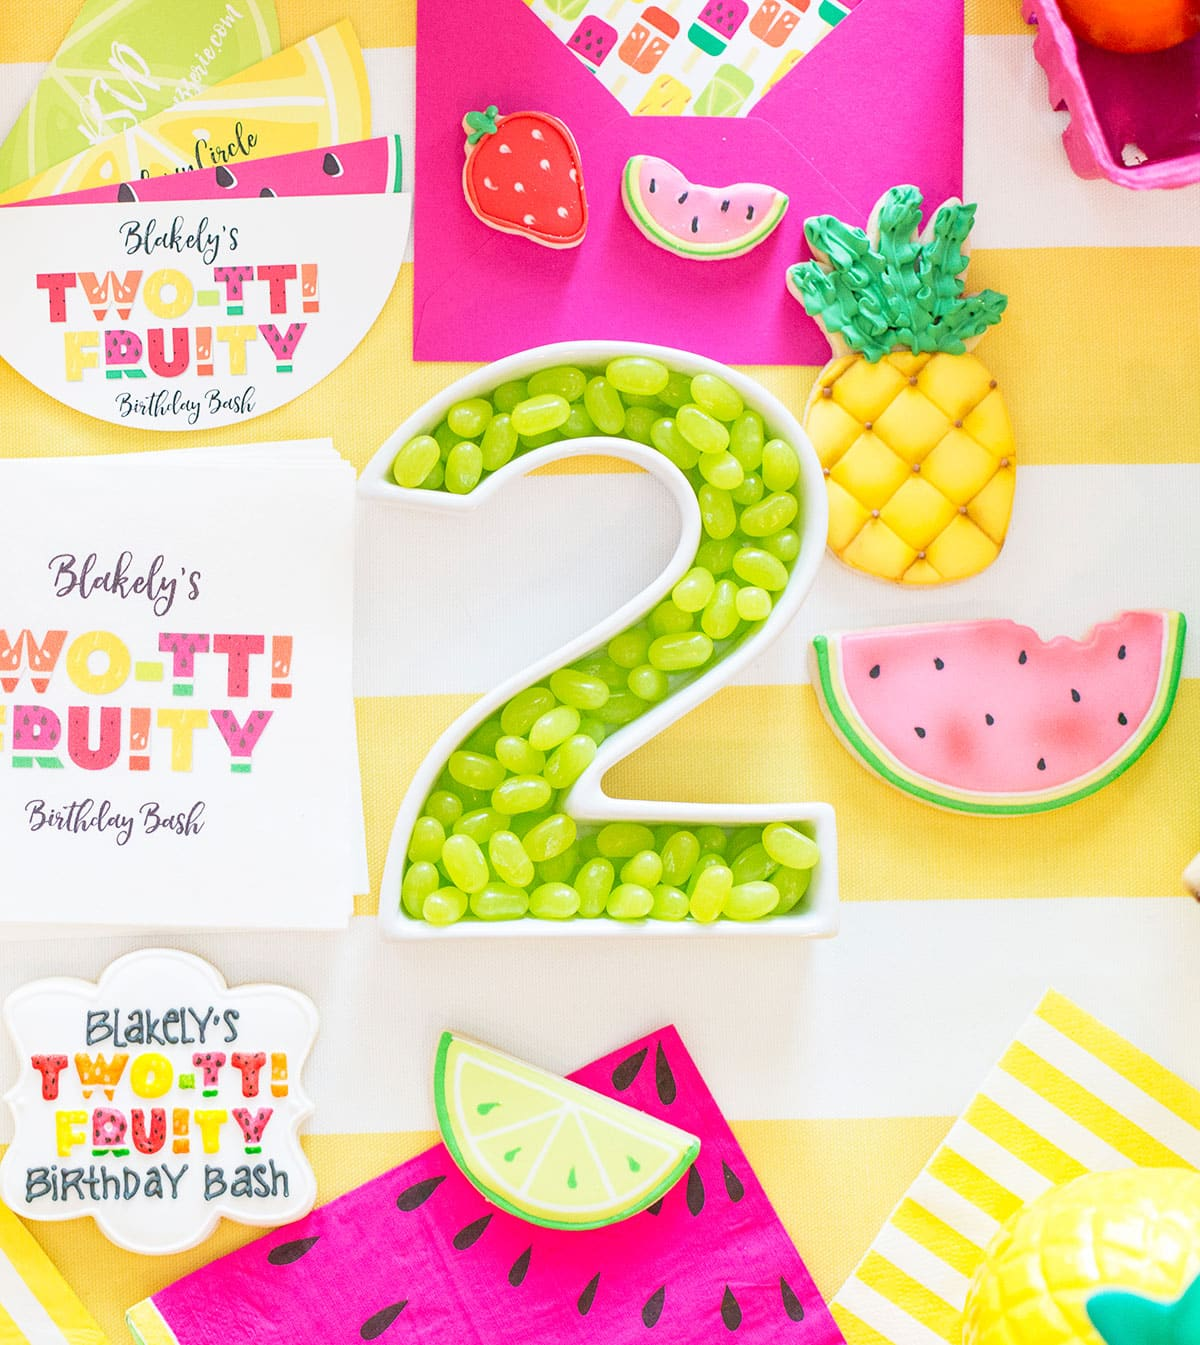 Two Tti Fruity Birthday Party Blakely Turns 2